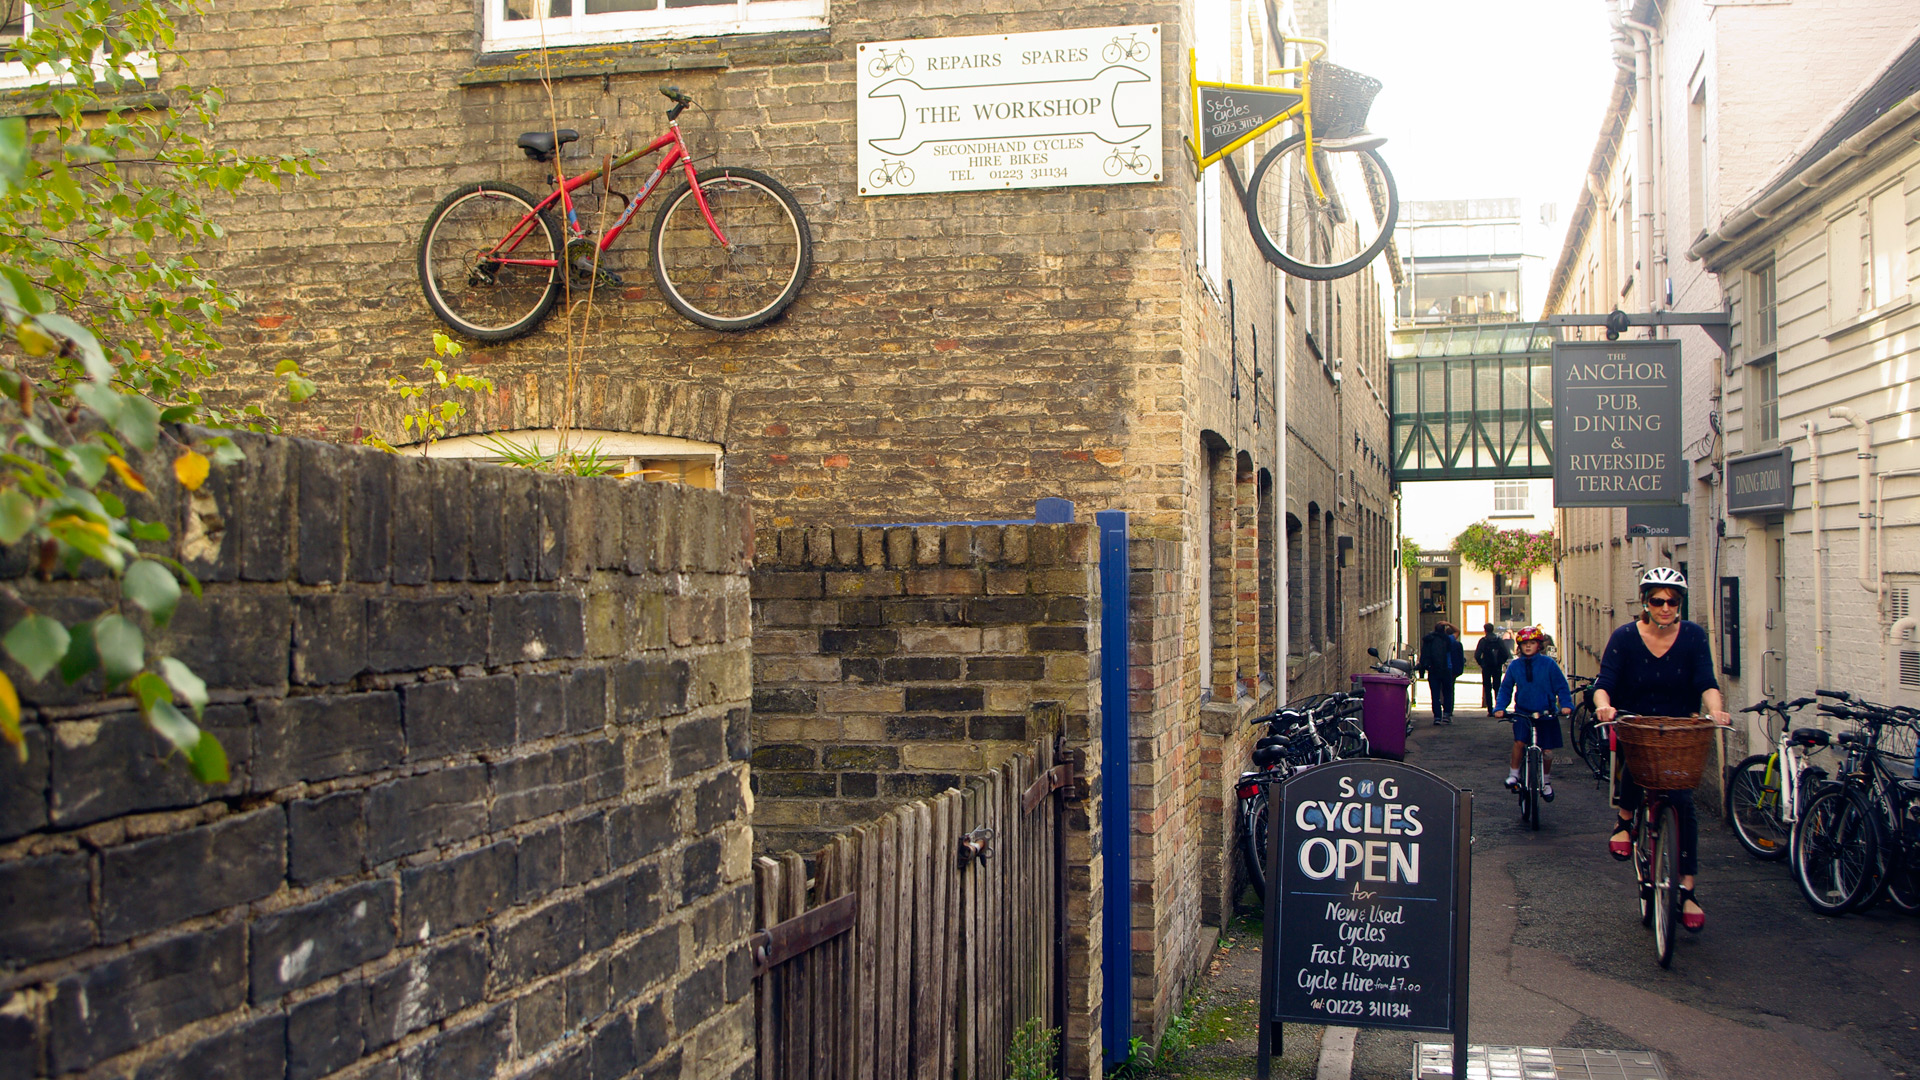 Bicycle hire and repairs - Cambridge